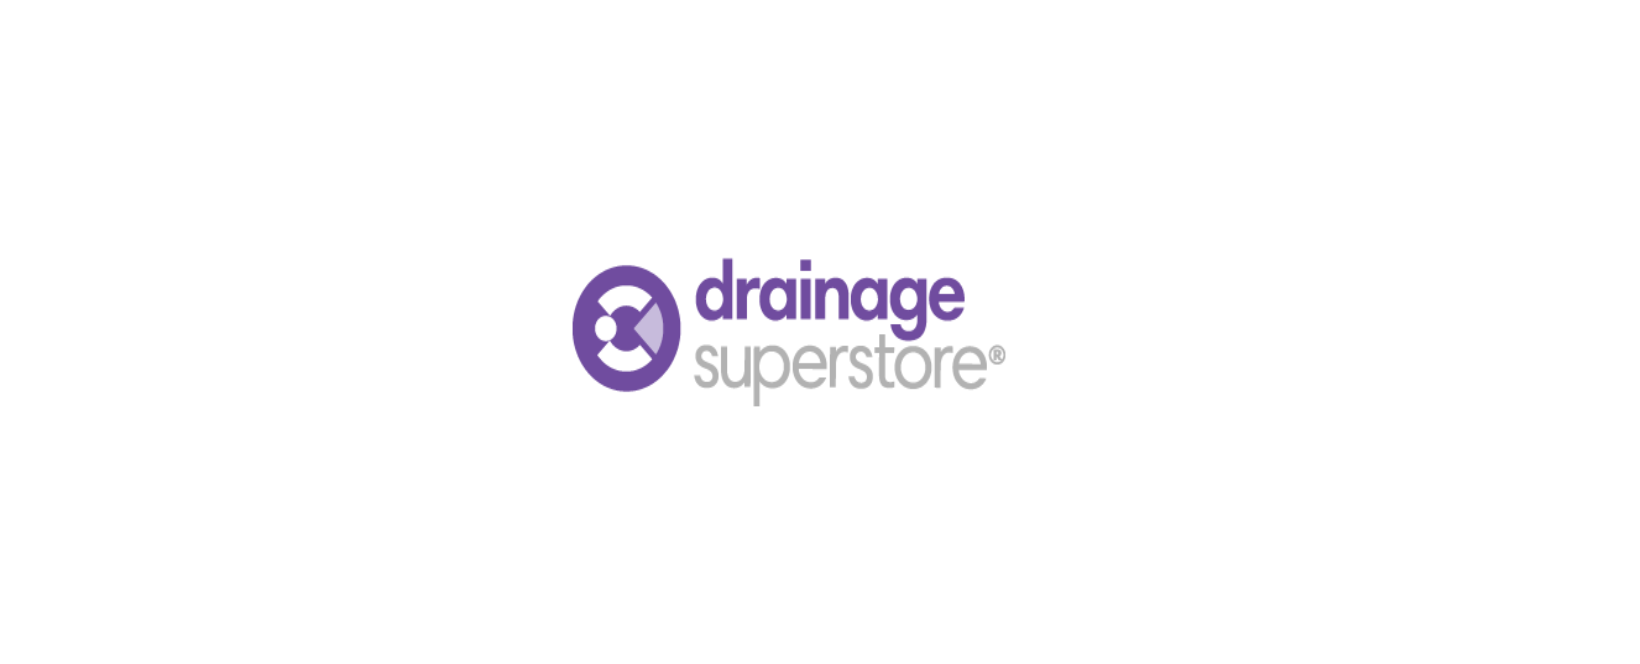 Drainage Superstore Discount Code 2021